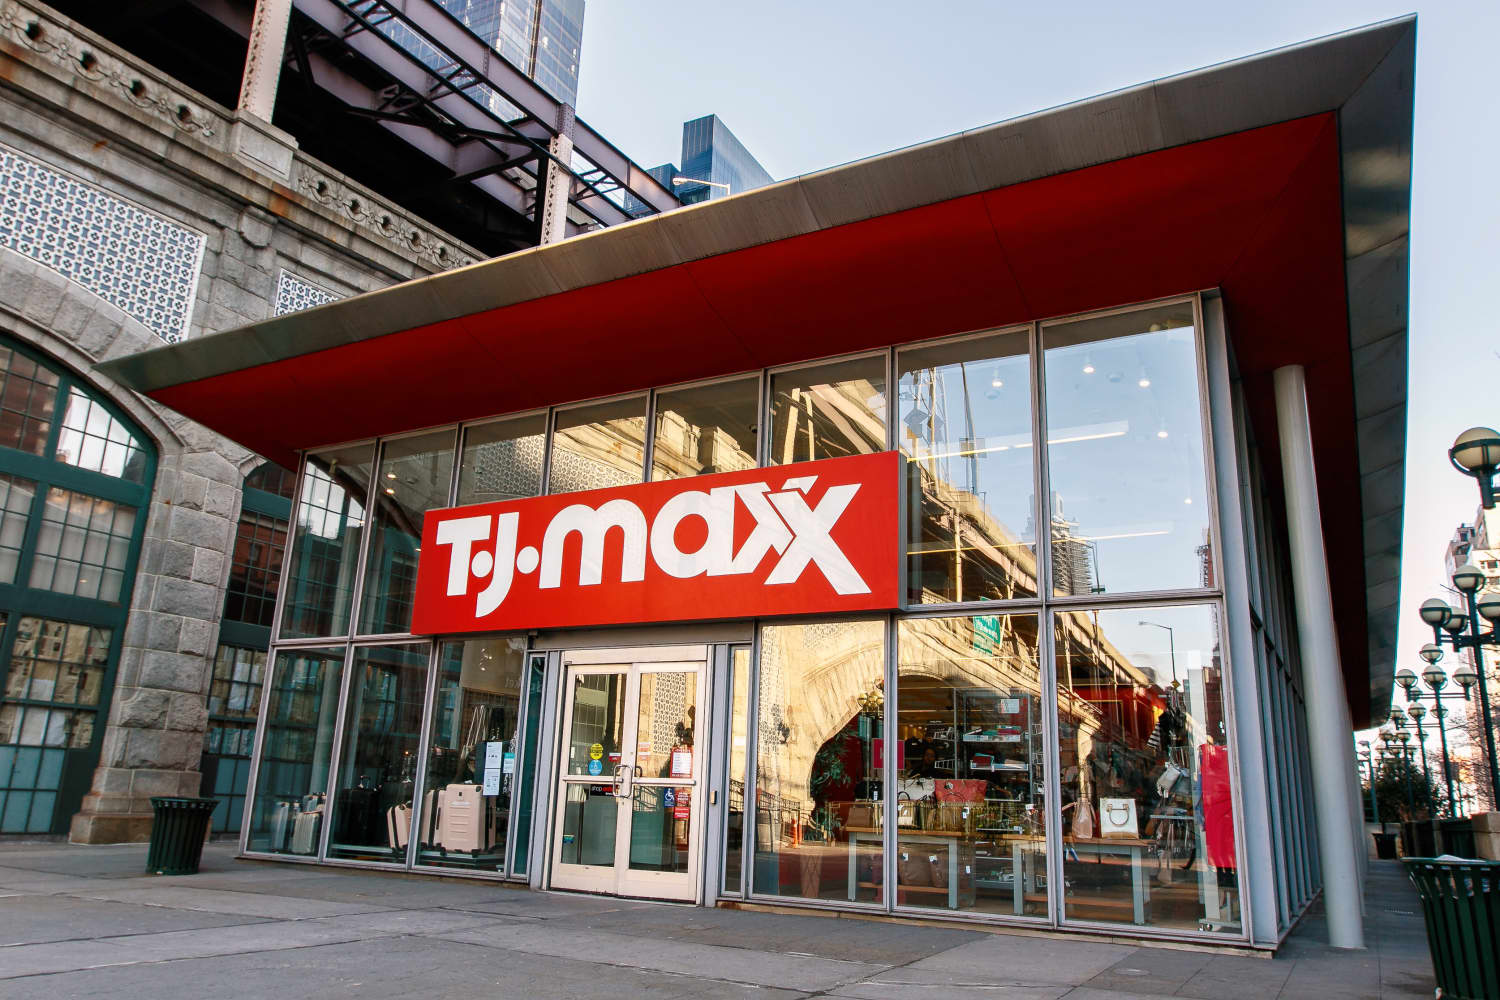 The Simple Reason Why T.J. Maxx Is Called T.K. Maxx in Europe